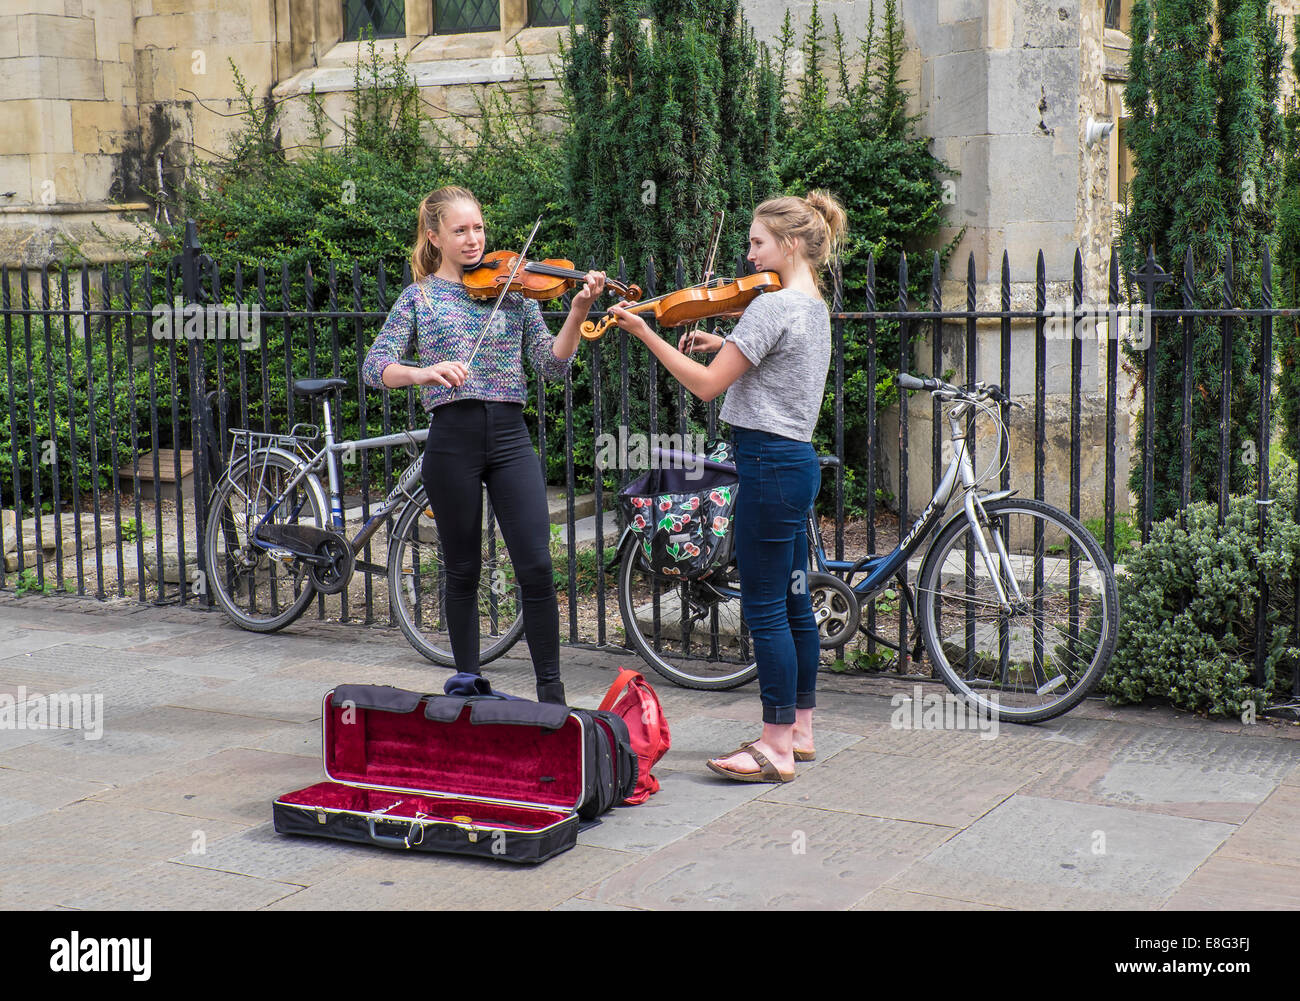 street-busking-duo-on-violins-cambridge-